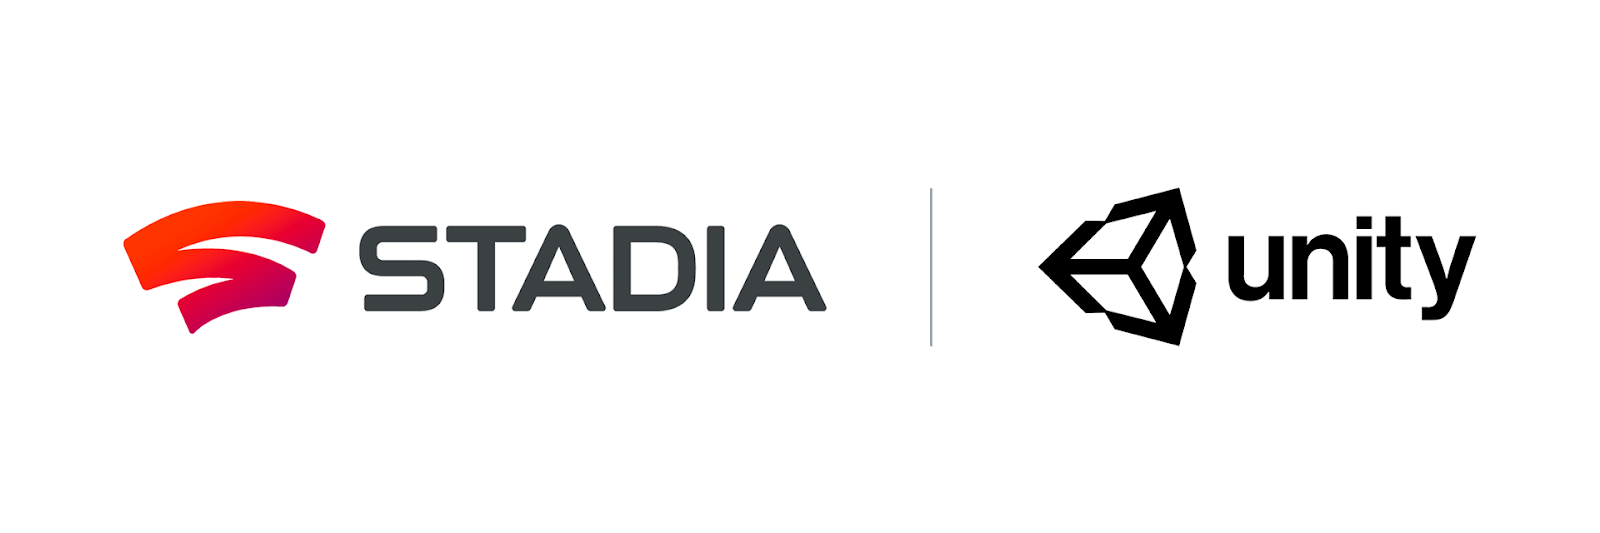 Unity Support for Stadia: Here's what you need to know